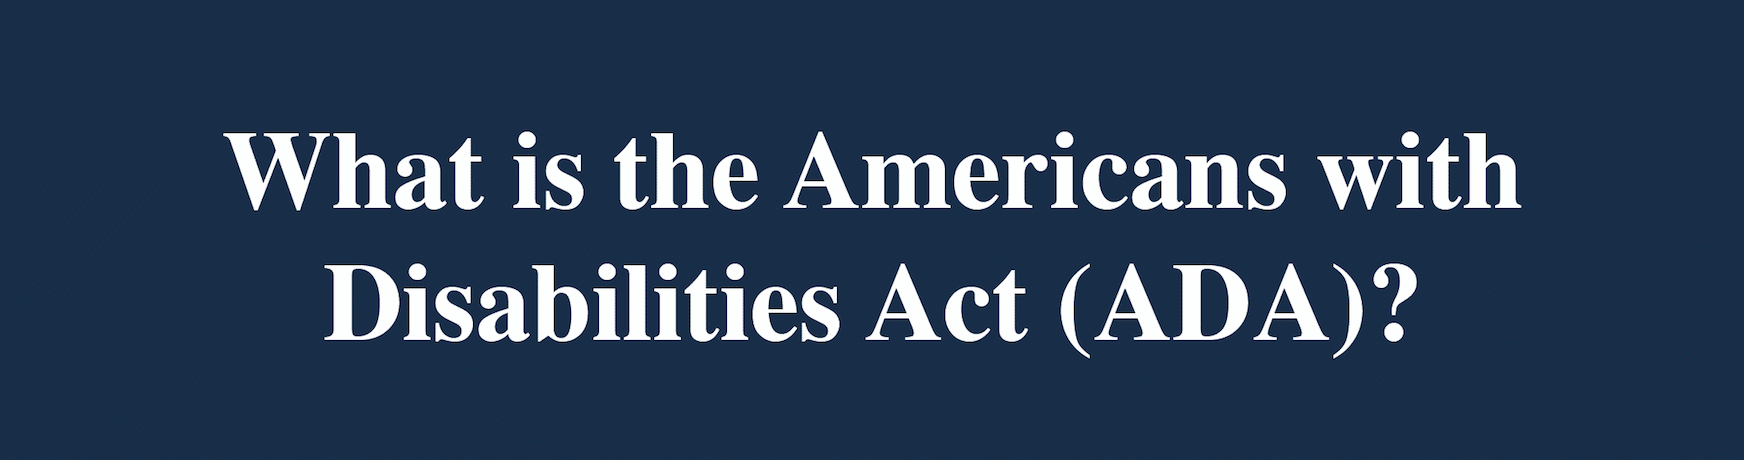 What is the Americans with Disabilities Act?